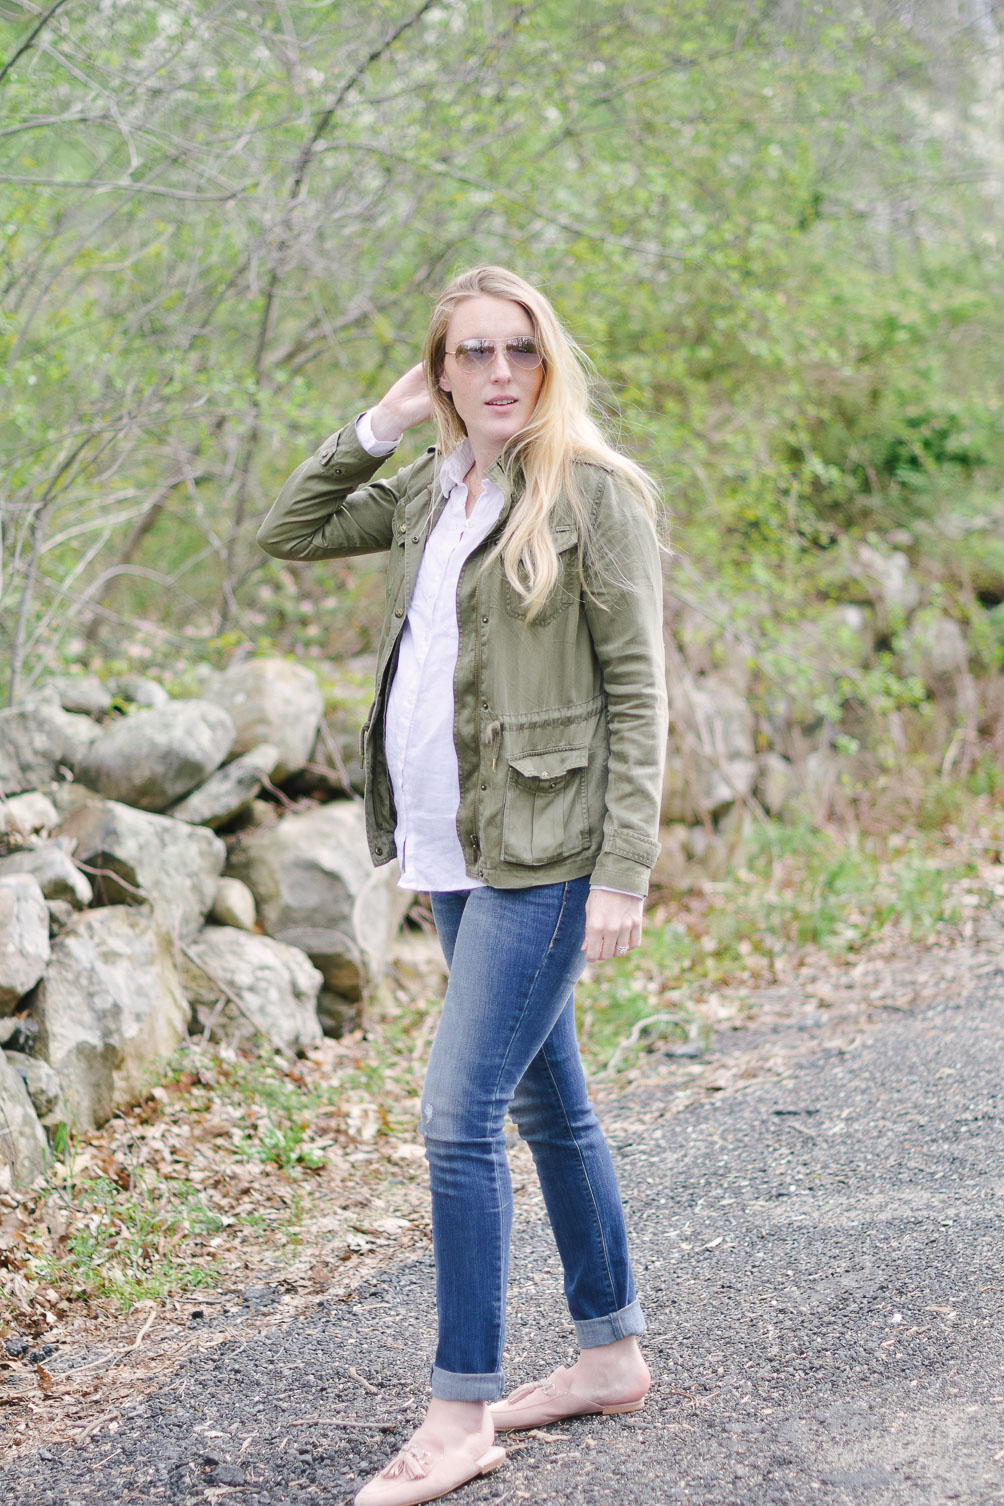 styling spring earth tones in this maternity fashion look with an army green jacket and skinny jeans